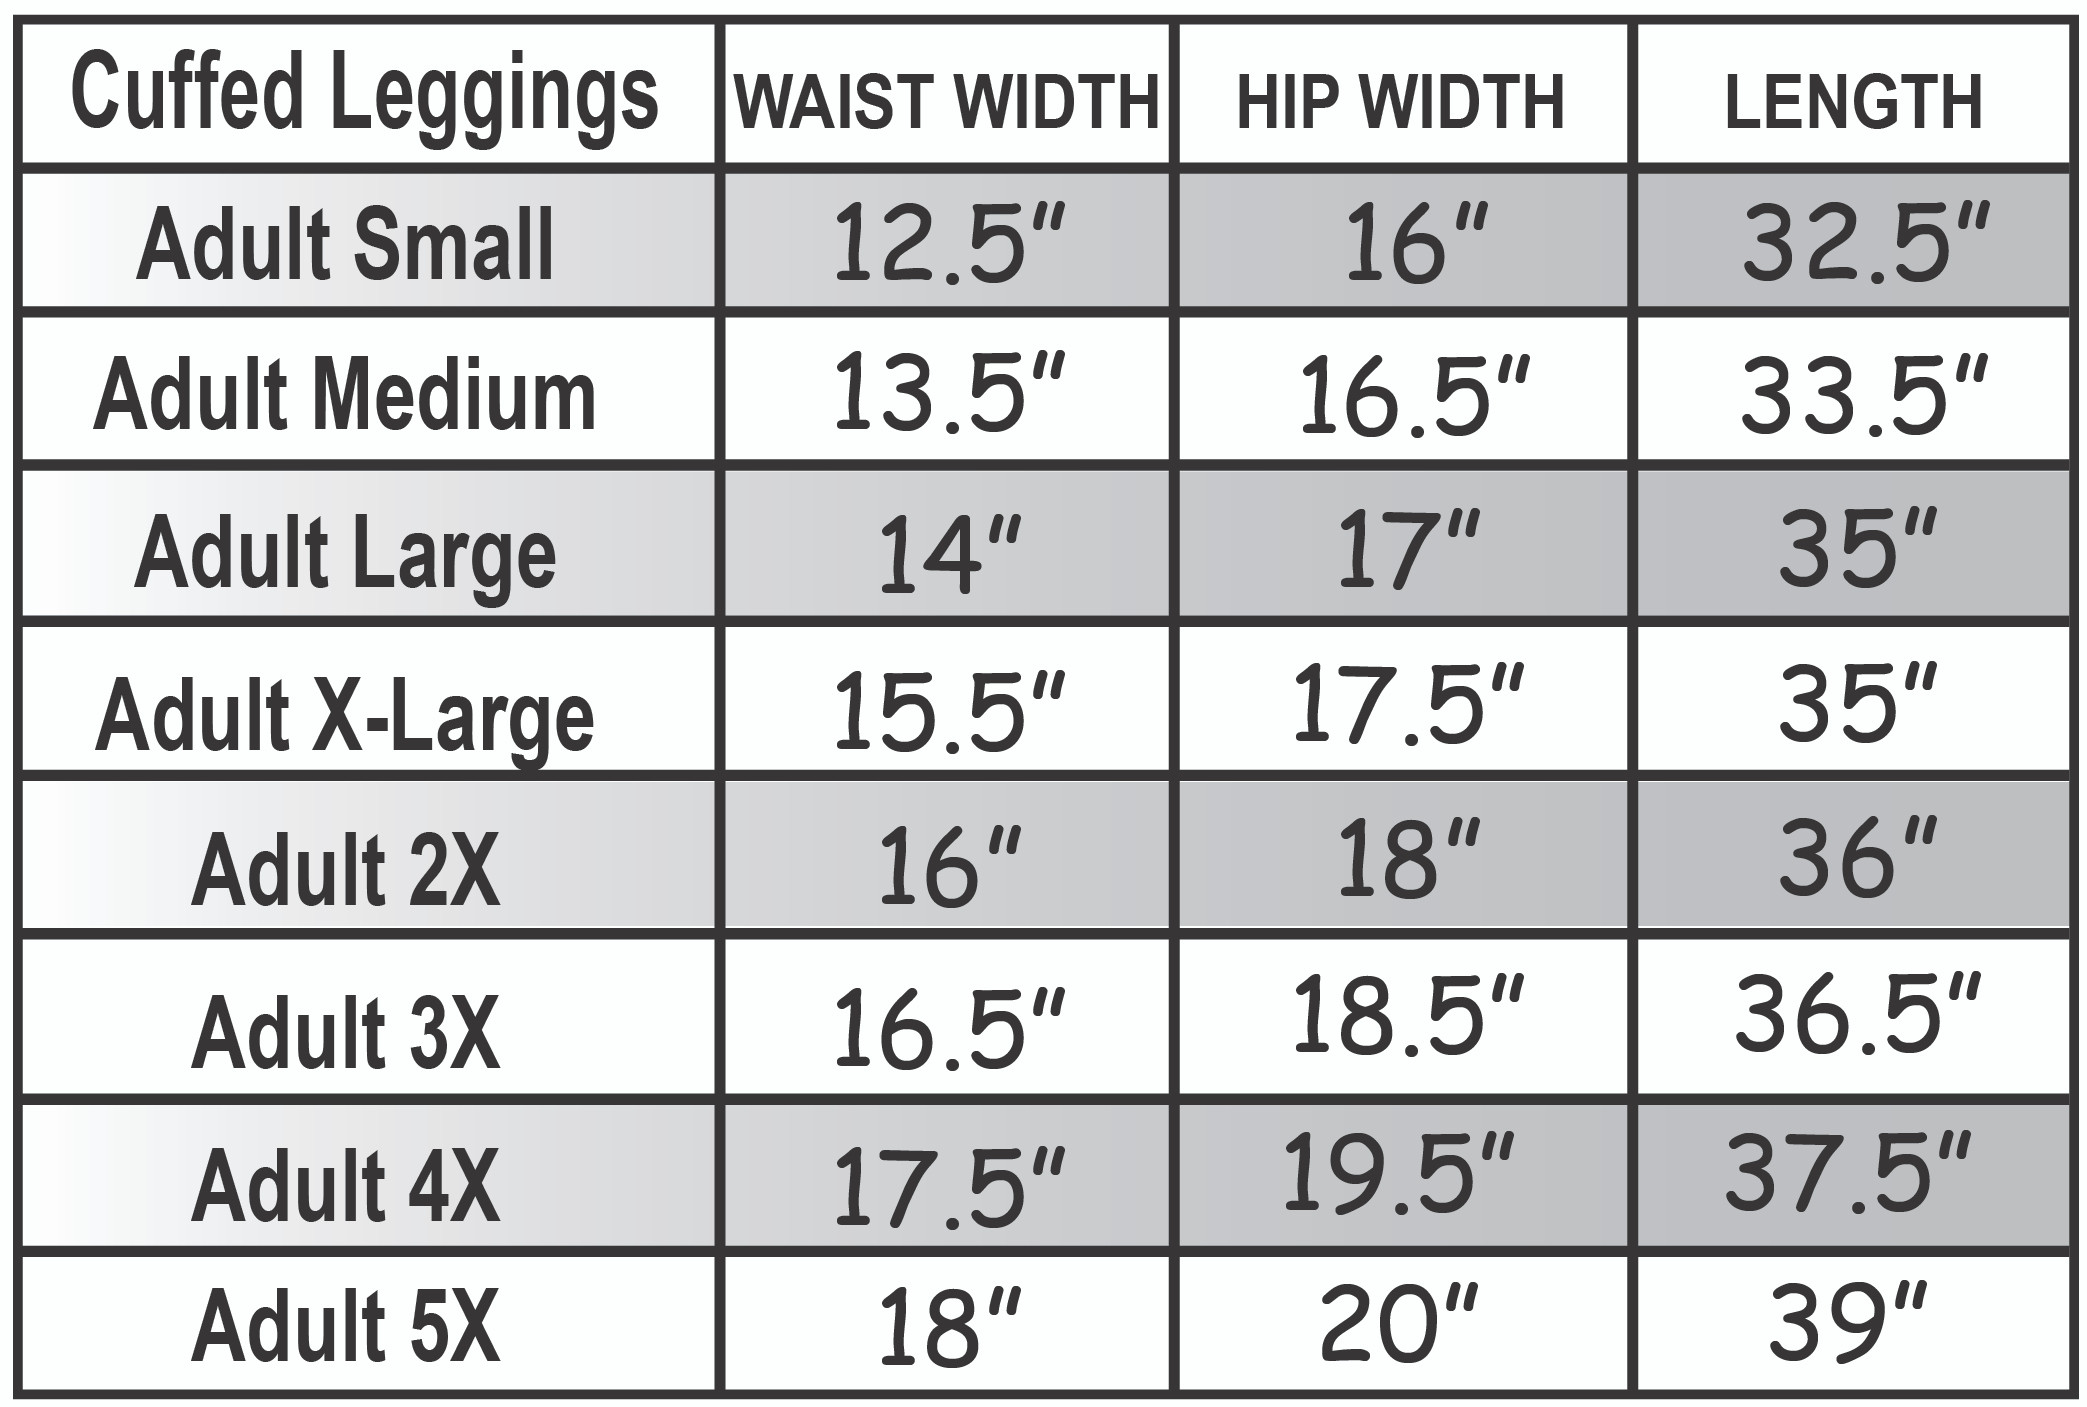 Cuffed Leggings Size Chart